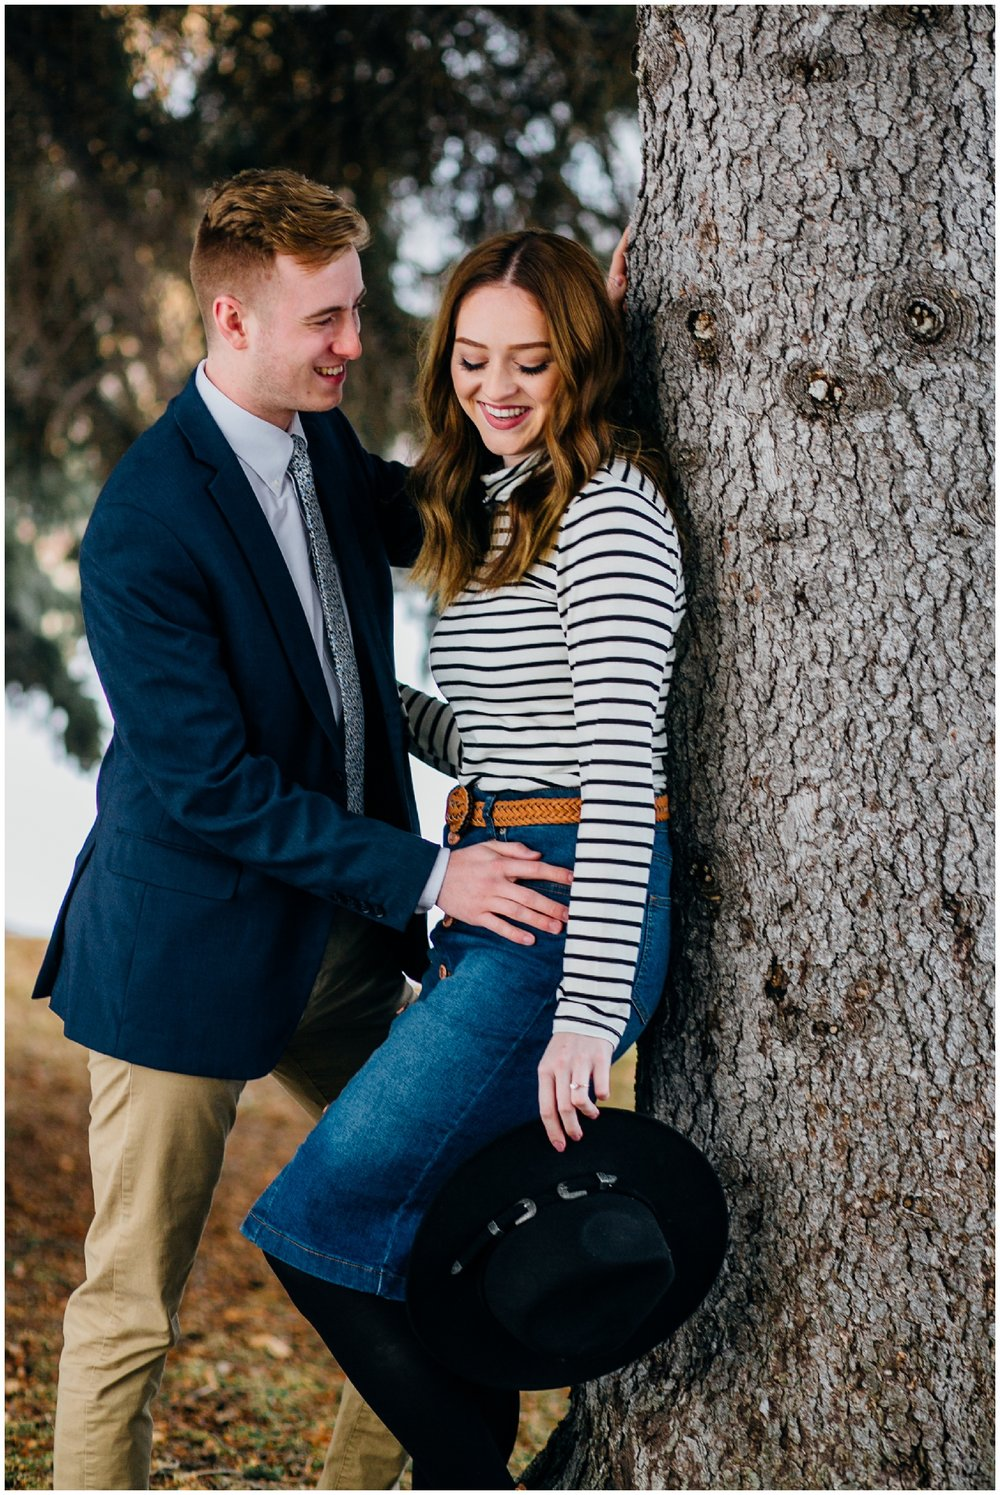 idaho-falls-wedding-photographer-mountain-adventure-engagements-rexburg-pocatello-wyoming-utah_1895.jpg